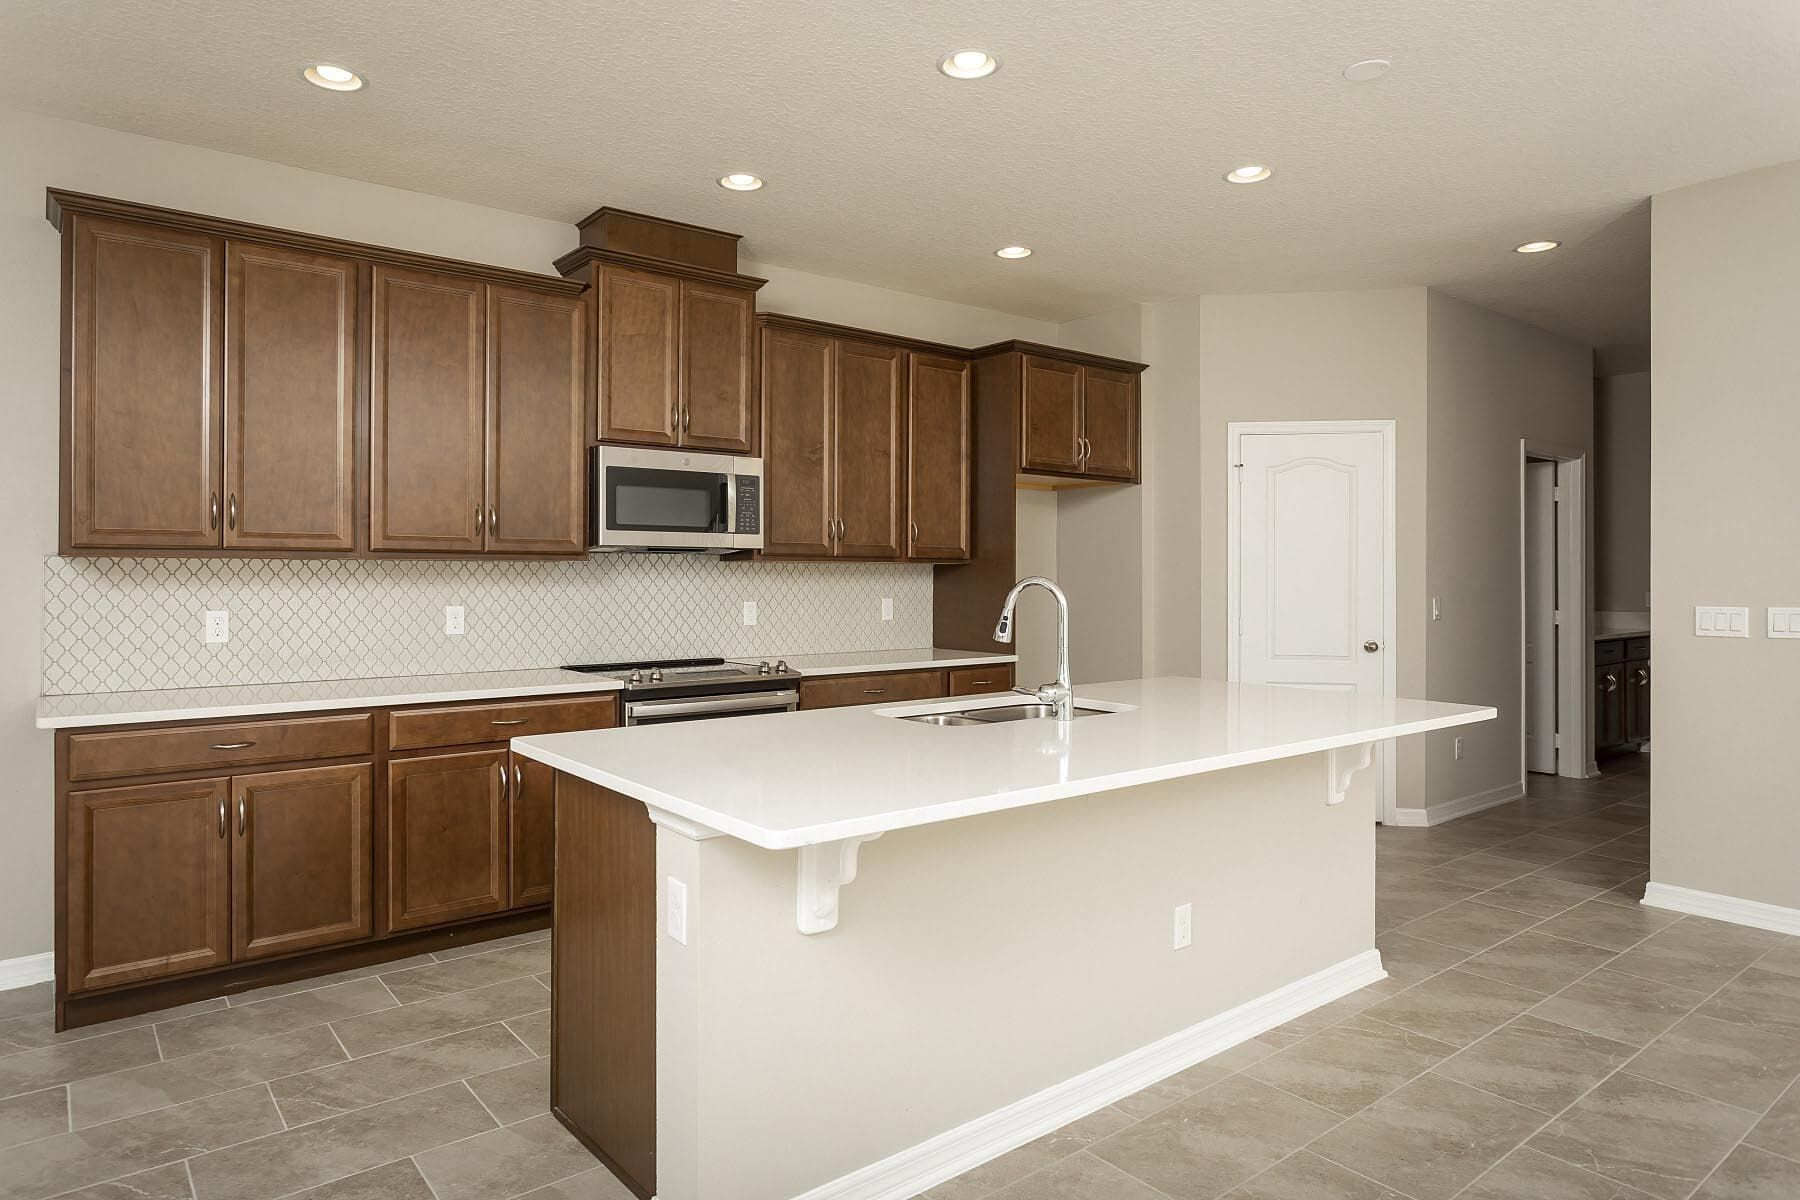 Kitchen featured in the Halifax By M/I Homes in Orlando, FL